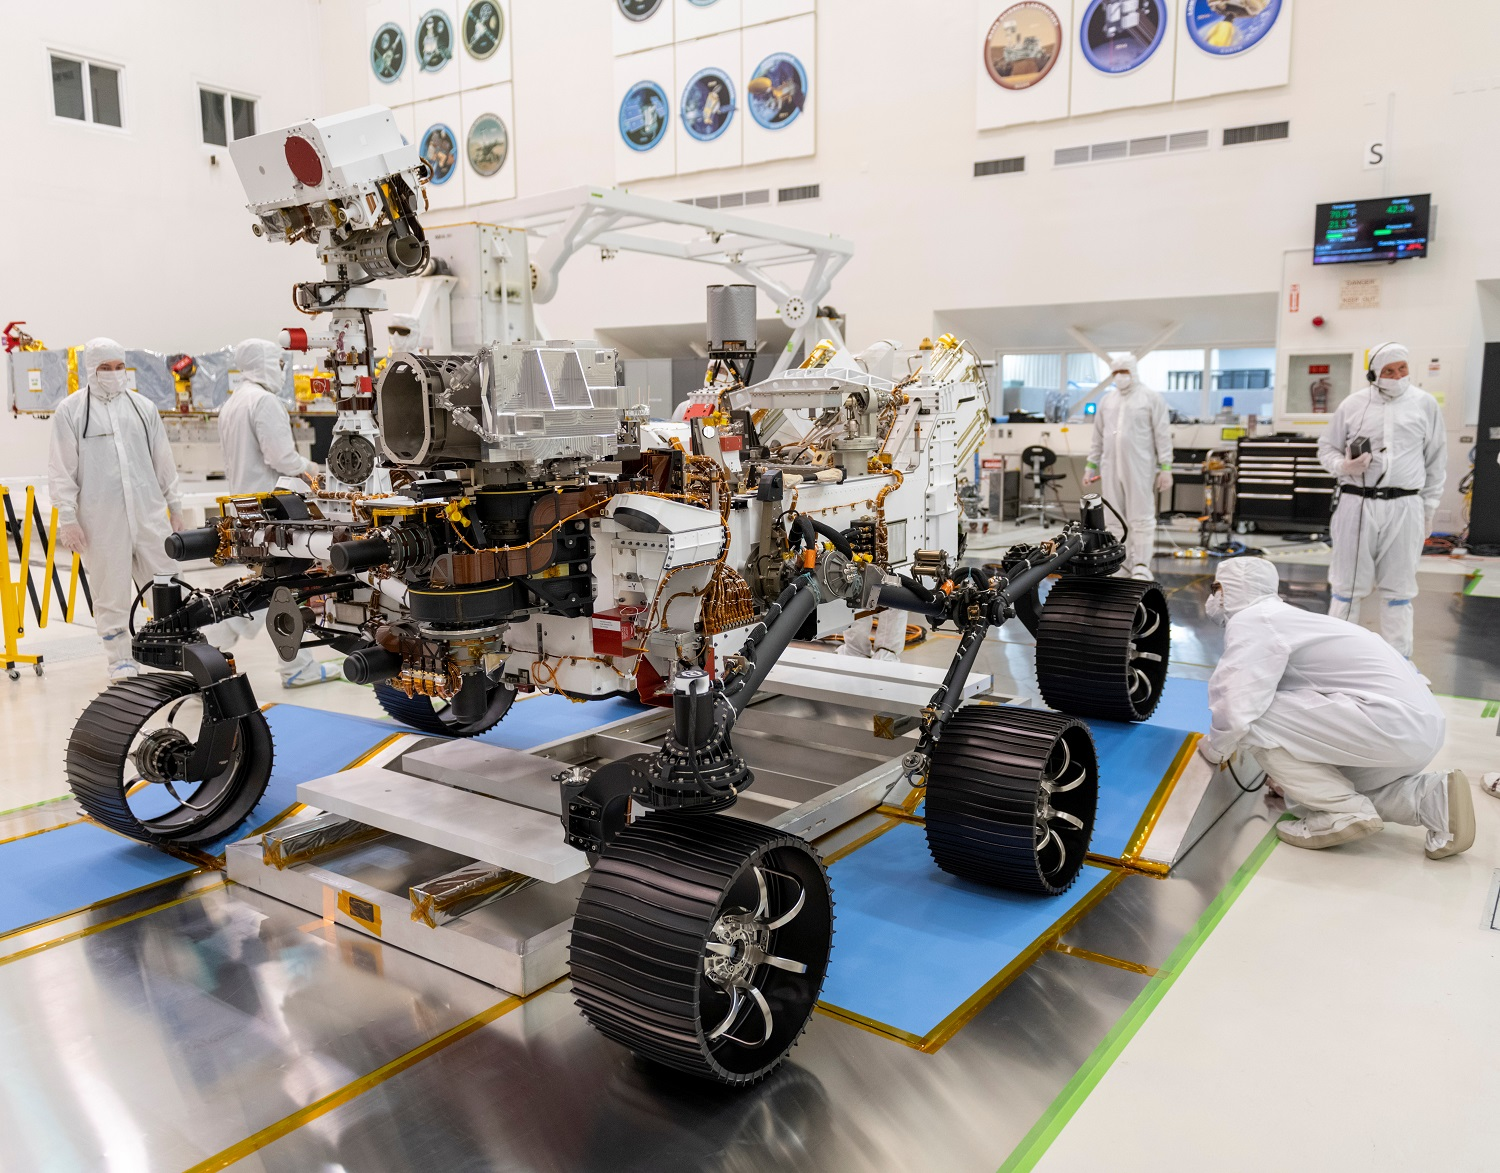 Mars 2020: Perseverance Rover Completes Launch Readiness Test